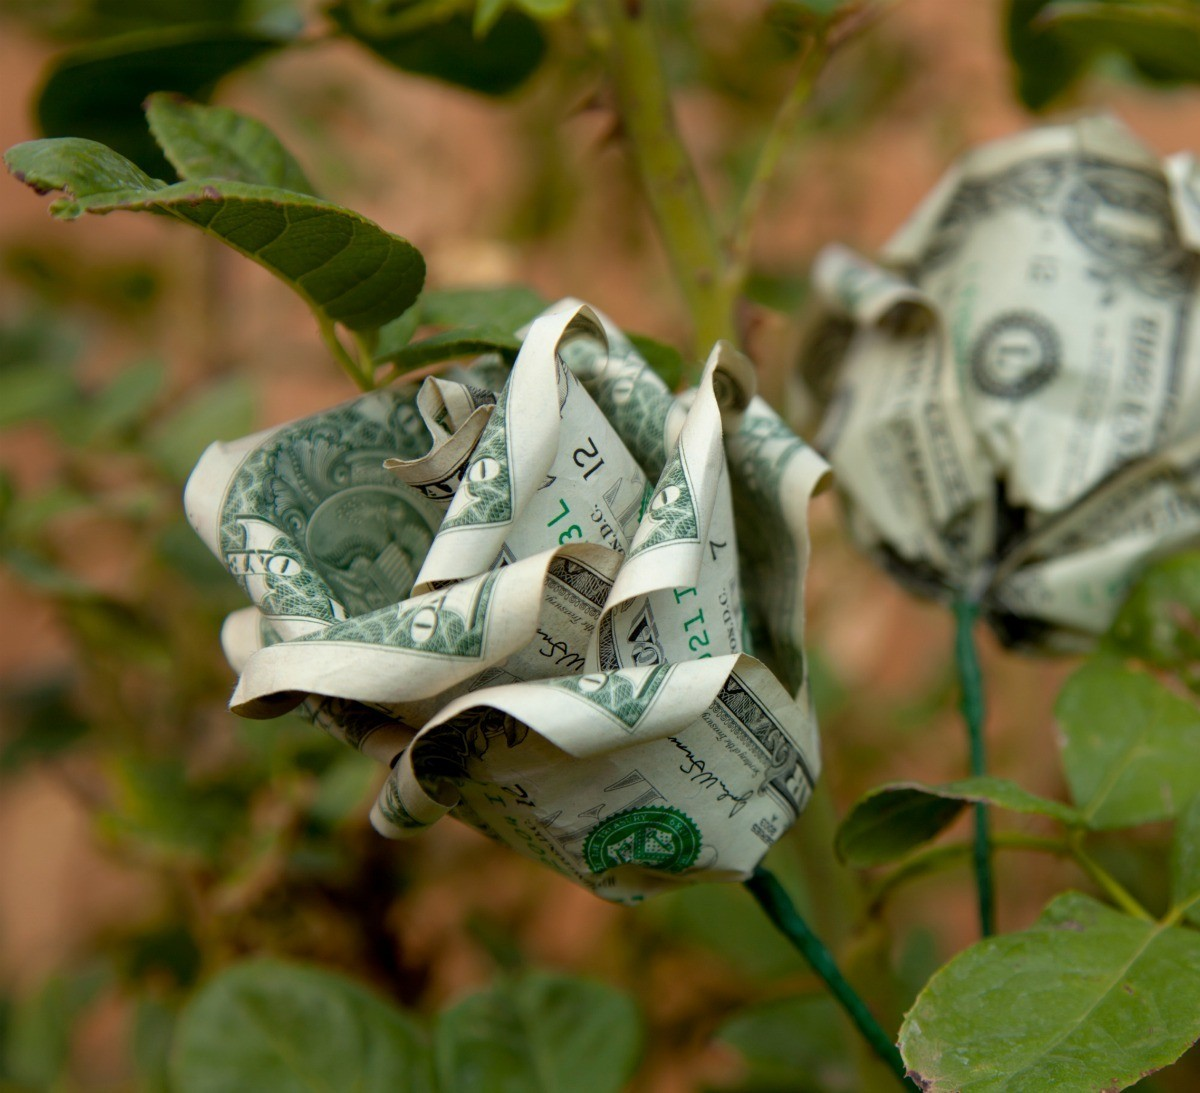 How to Make Flowers out of Dollar Bills - YouTube | 1093x1200